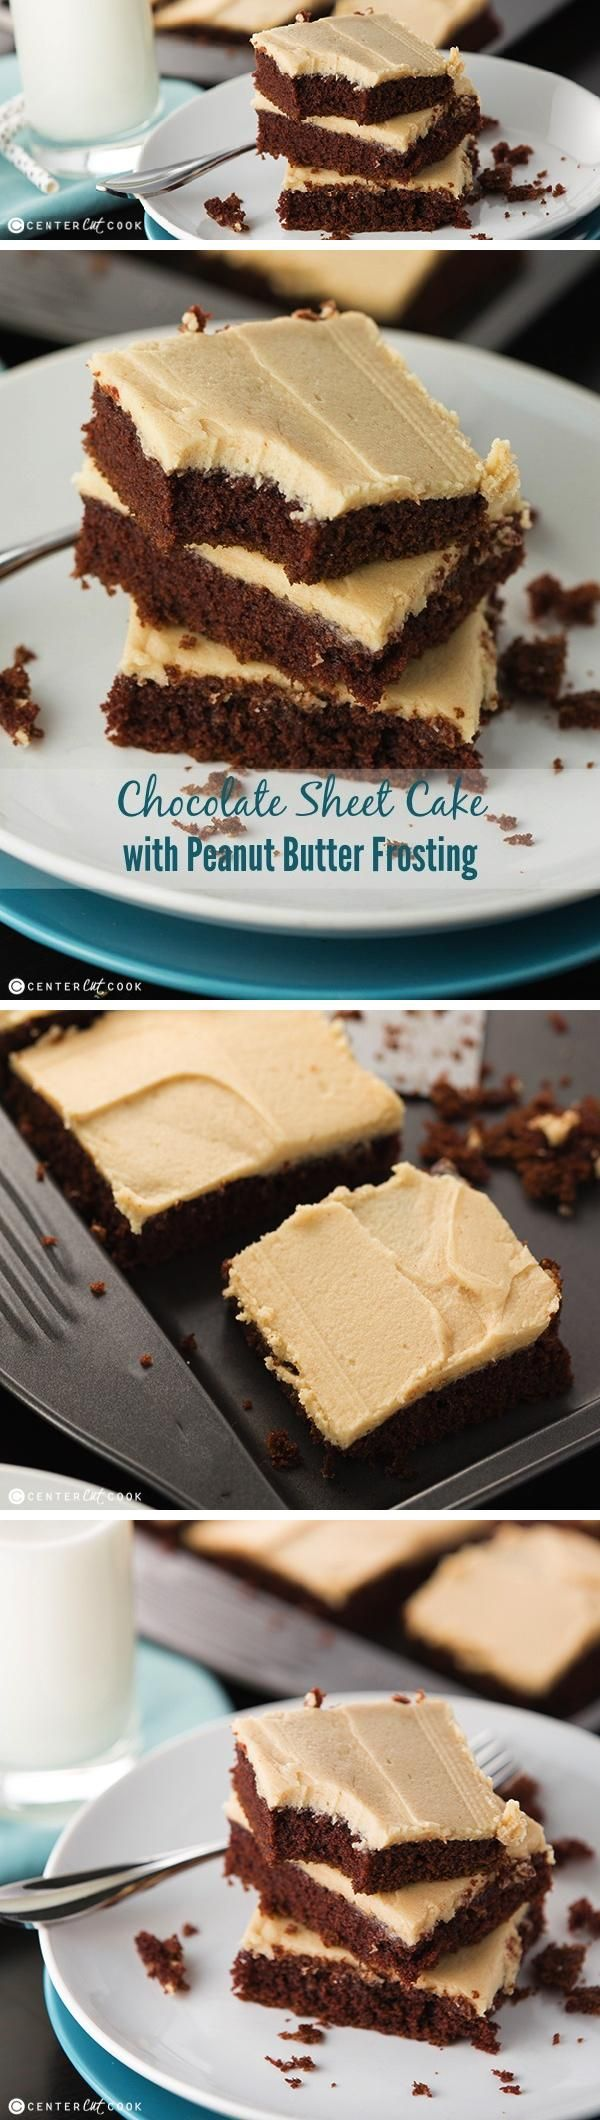 CHOCOLATE SHEET CAKE Recipe make from scratch only requires 20 minutes to bake, and no mixer required! Topped with the most decadent PEANUT BUTTER FROSTING, this chocolate cake is hard to resist.